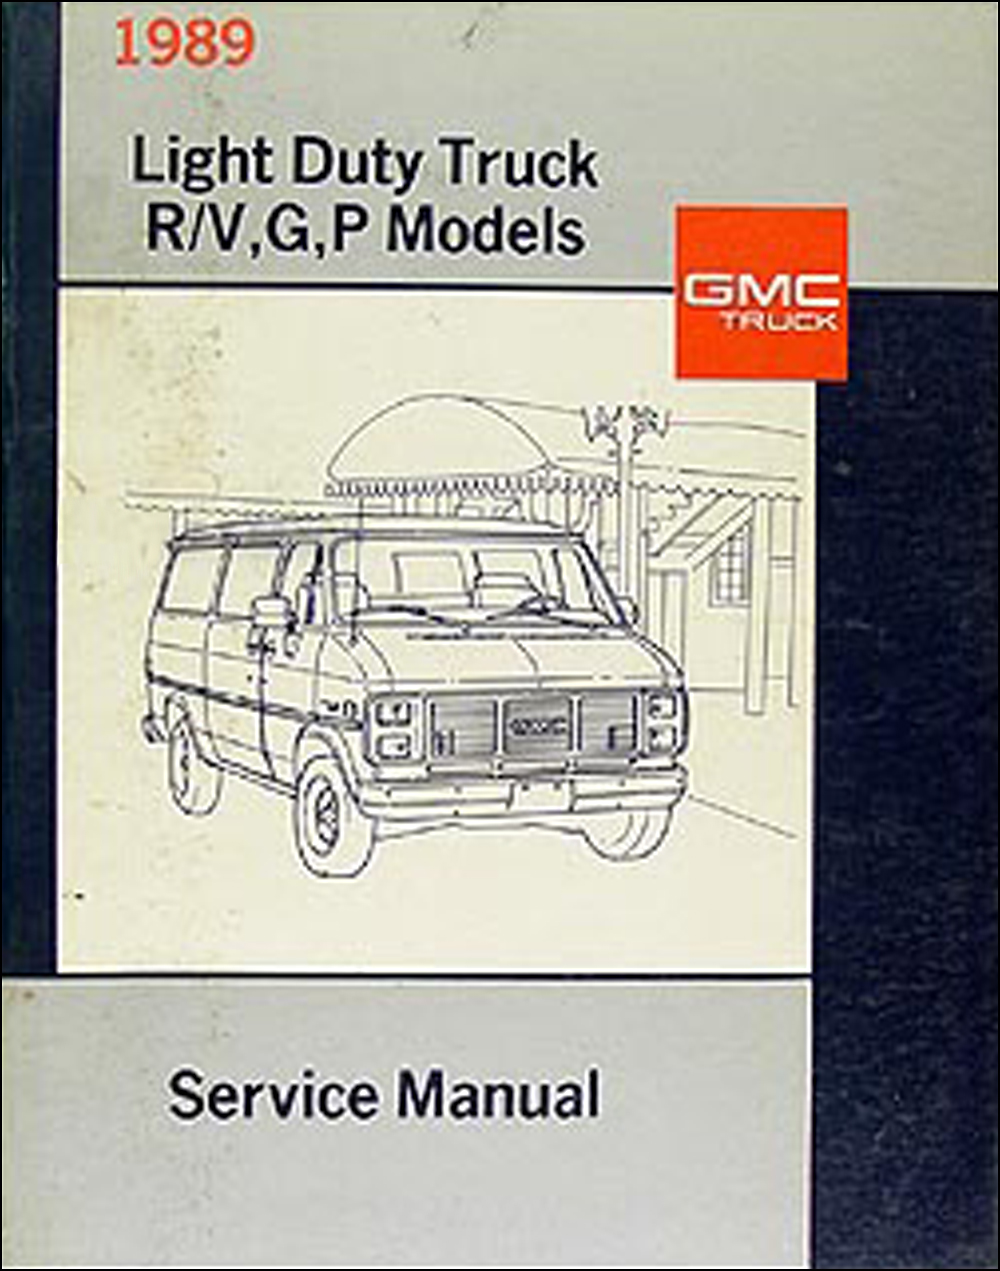 1989 GMC Repair Shop Manual Original Jimmy Suburban R/V Pickup Van FC